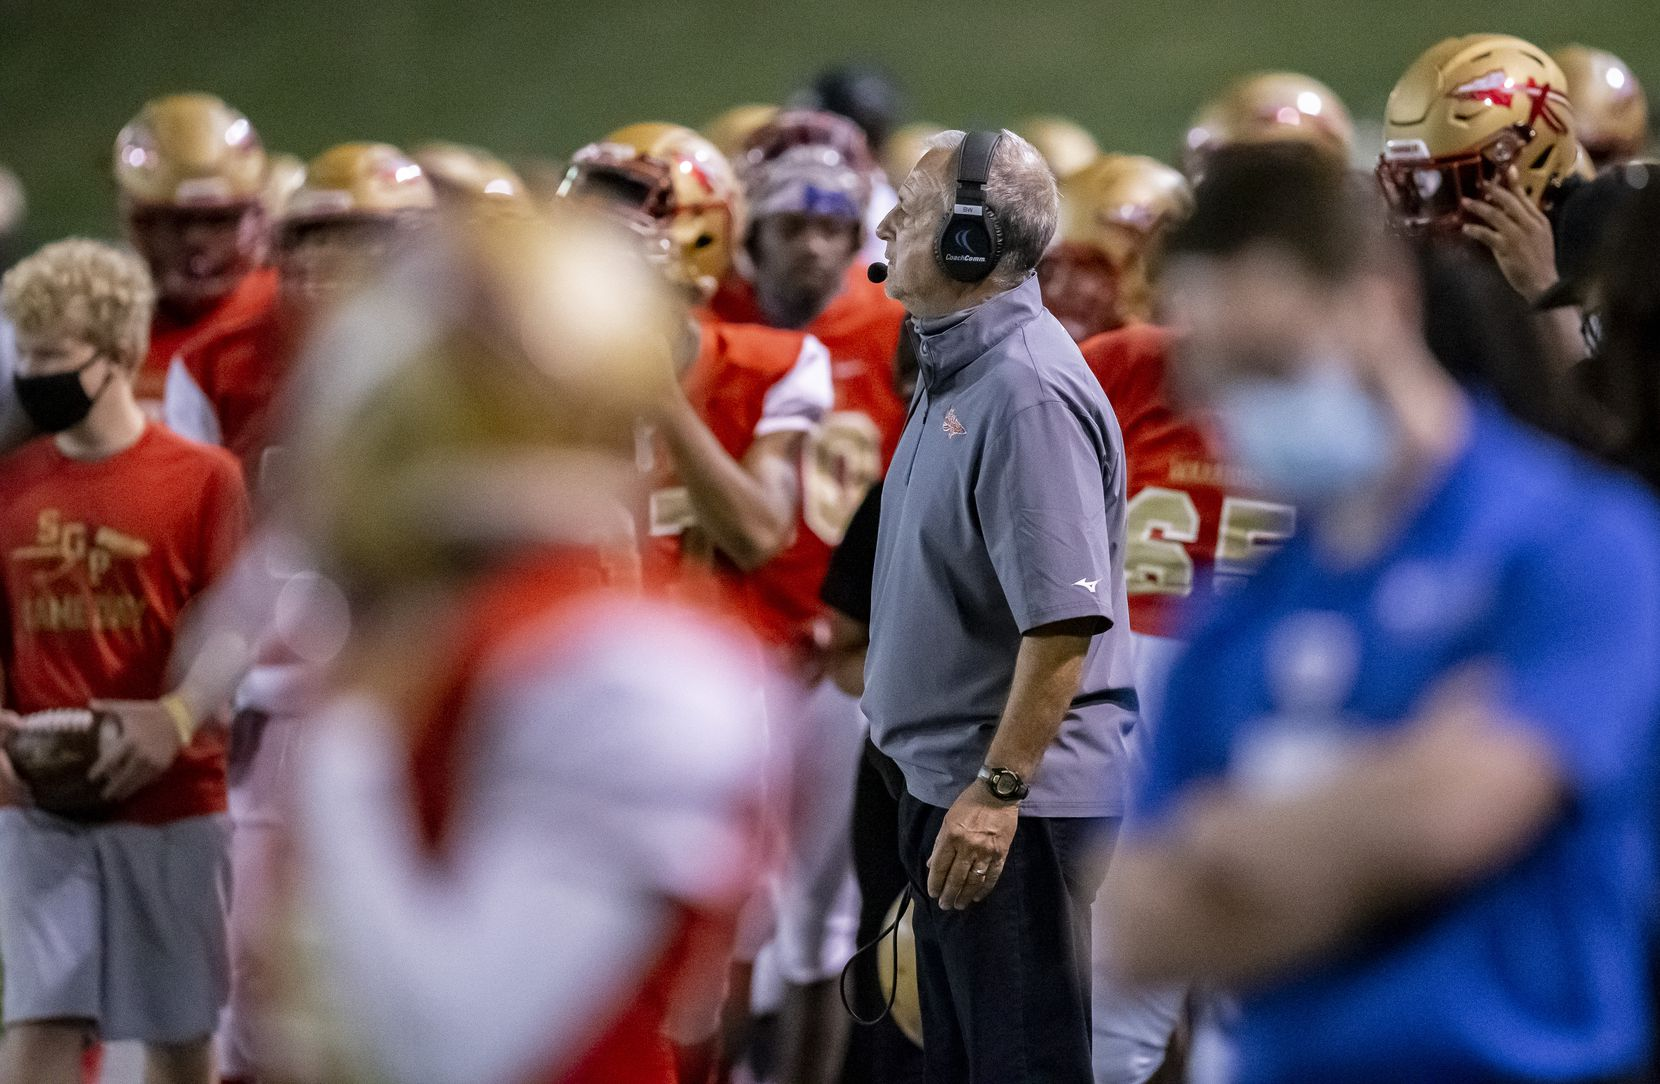 South Grand Prairie head coach Brent Whitson looks on from the sidelines, during the first half of a high school football game against Mesquite at the Gopher-Warrior Bowl in Grand Prairie, Thursday, October 1, 2020. (Brandon Wade/Special Contributor)